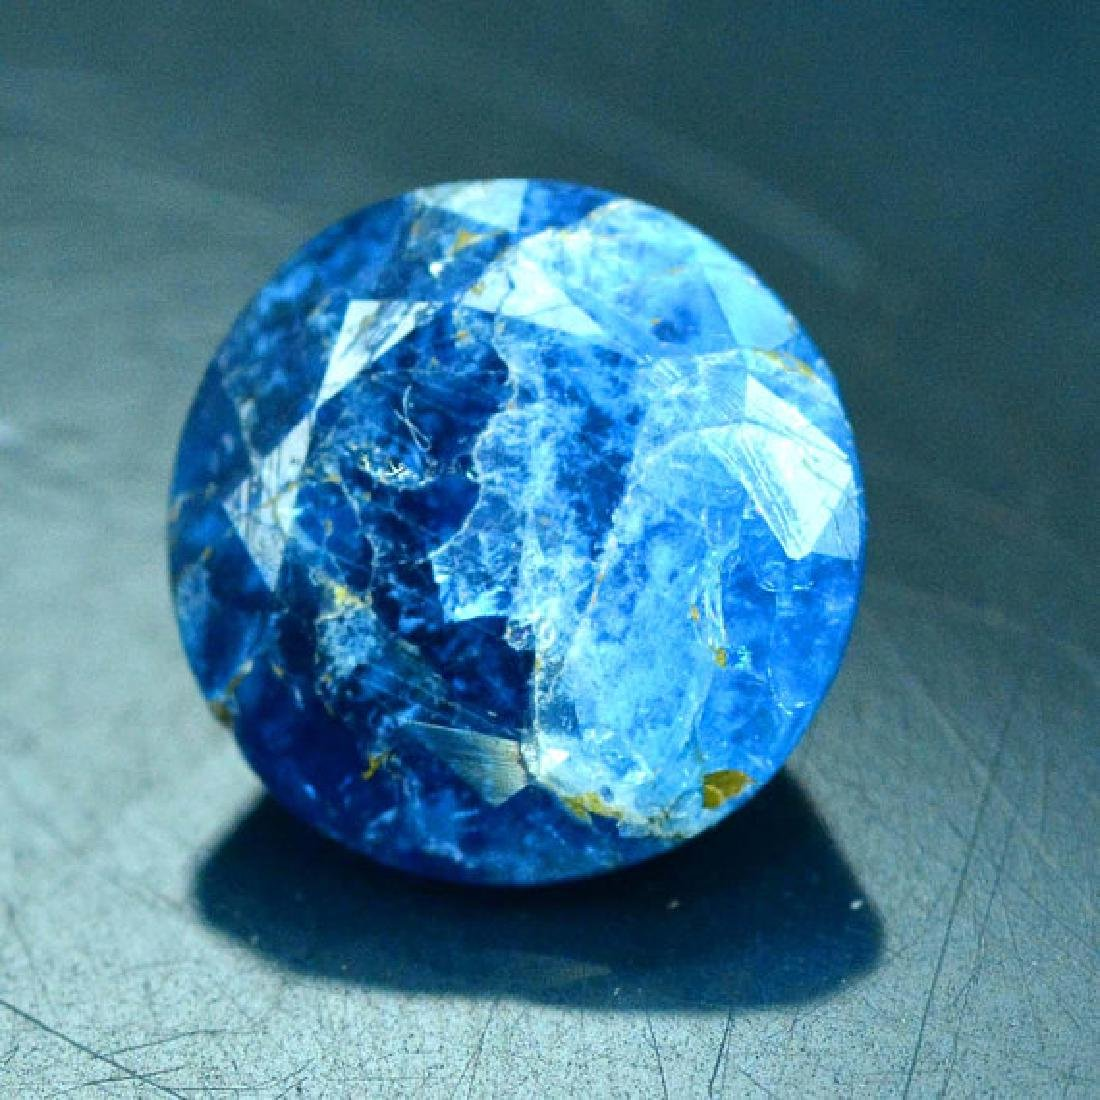 2.25 cts Extremely Rare Blue Color Natural Afghanite